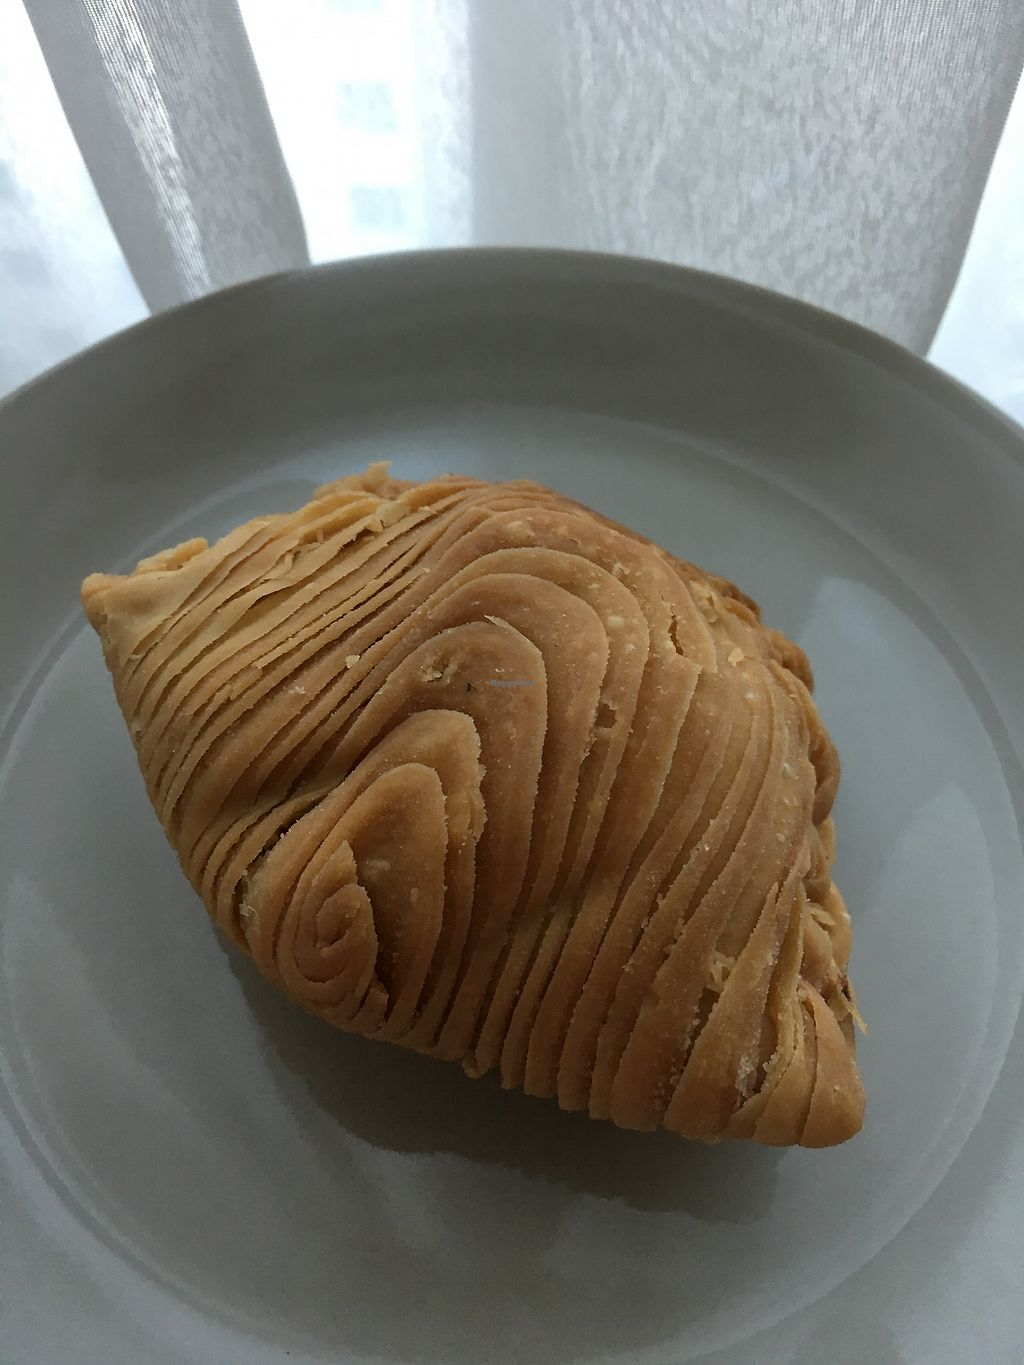 """Photo of Jovial Veggie House  by <a href=""""/members/profile/pauldub"""">pauldub</a> <br/>Very tasty vegan curry puff <br/> October 9, 2017  - <a href='/contact/abuse/image/9630/313621'>Report</a>"""